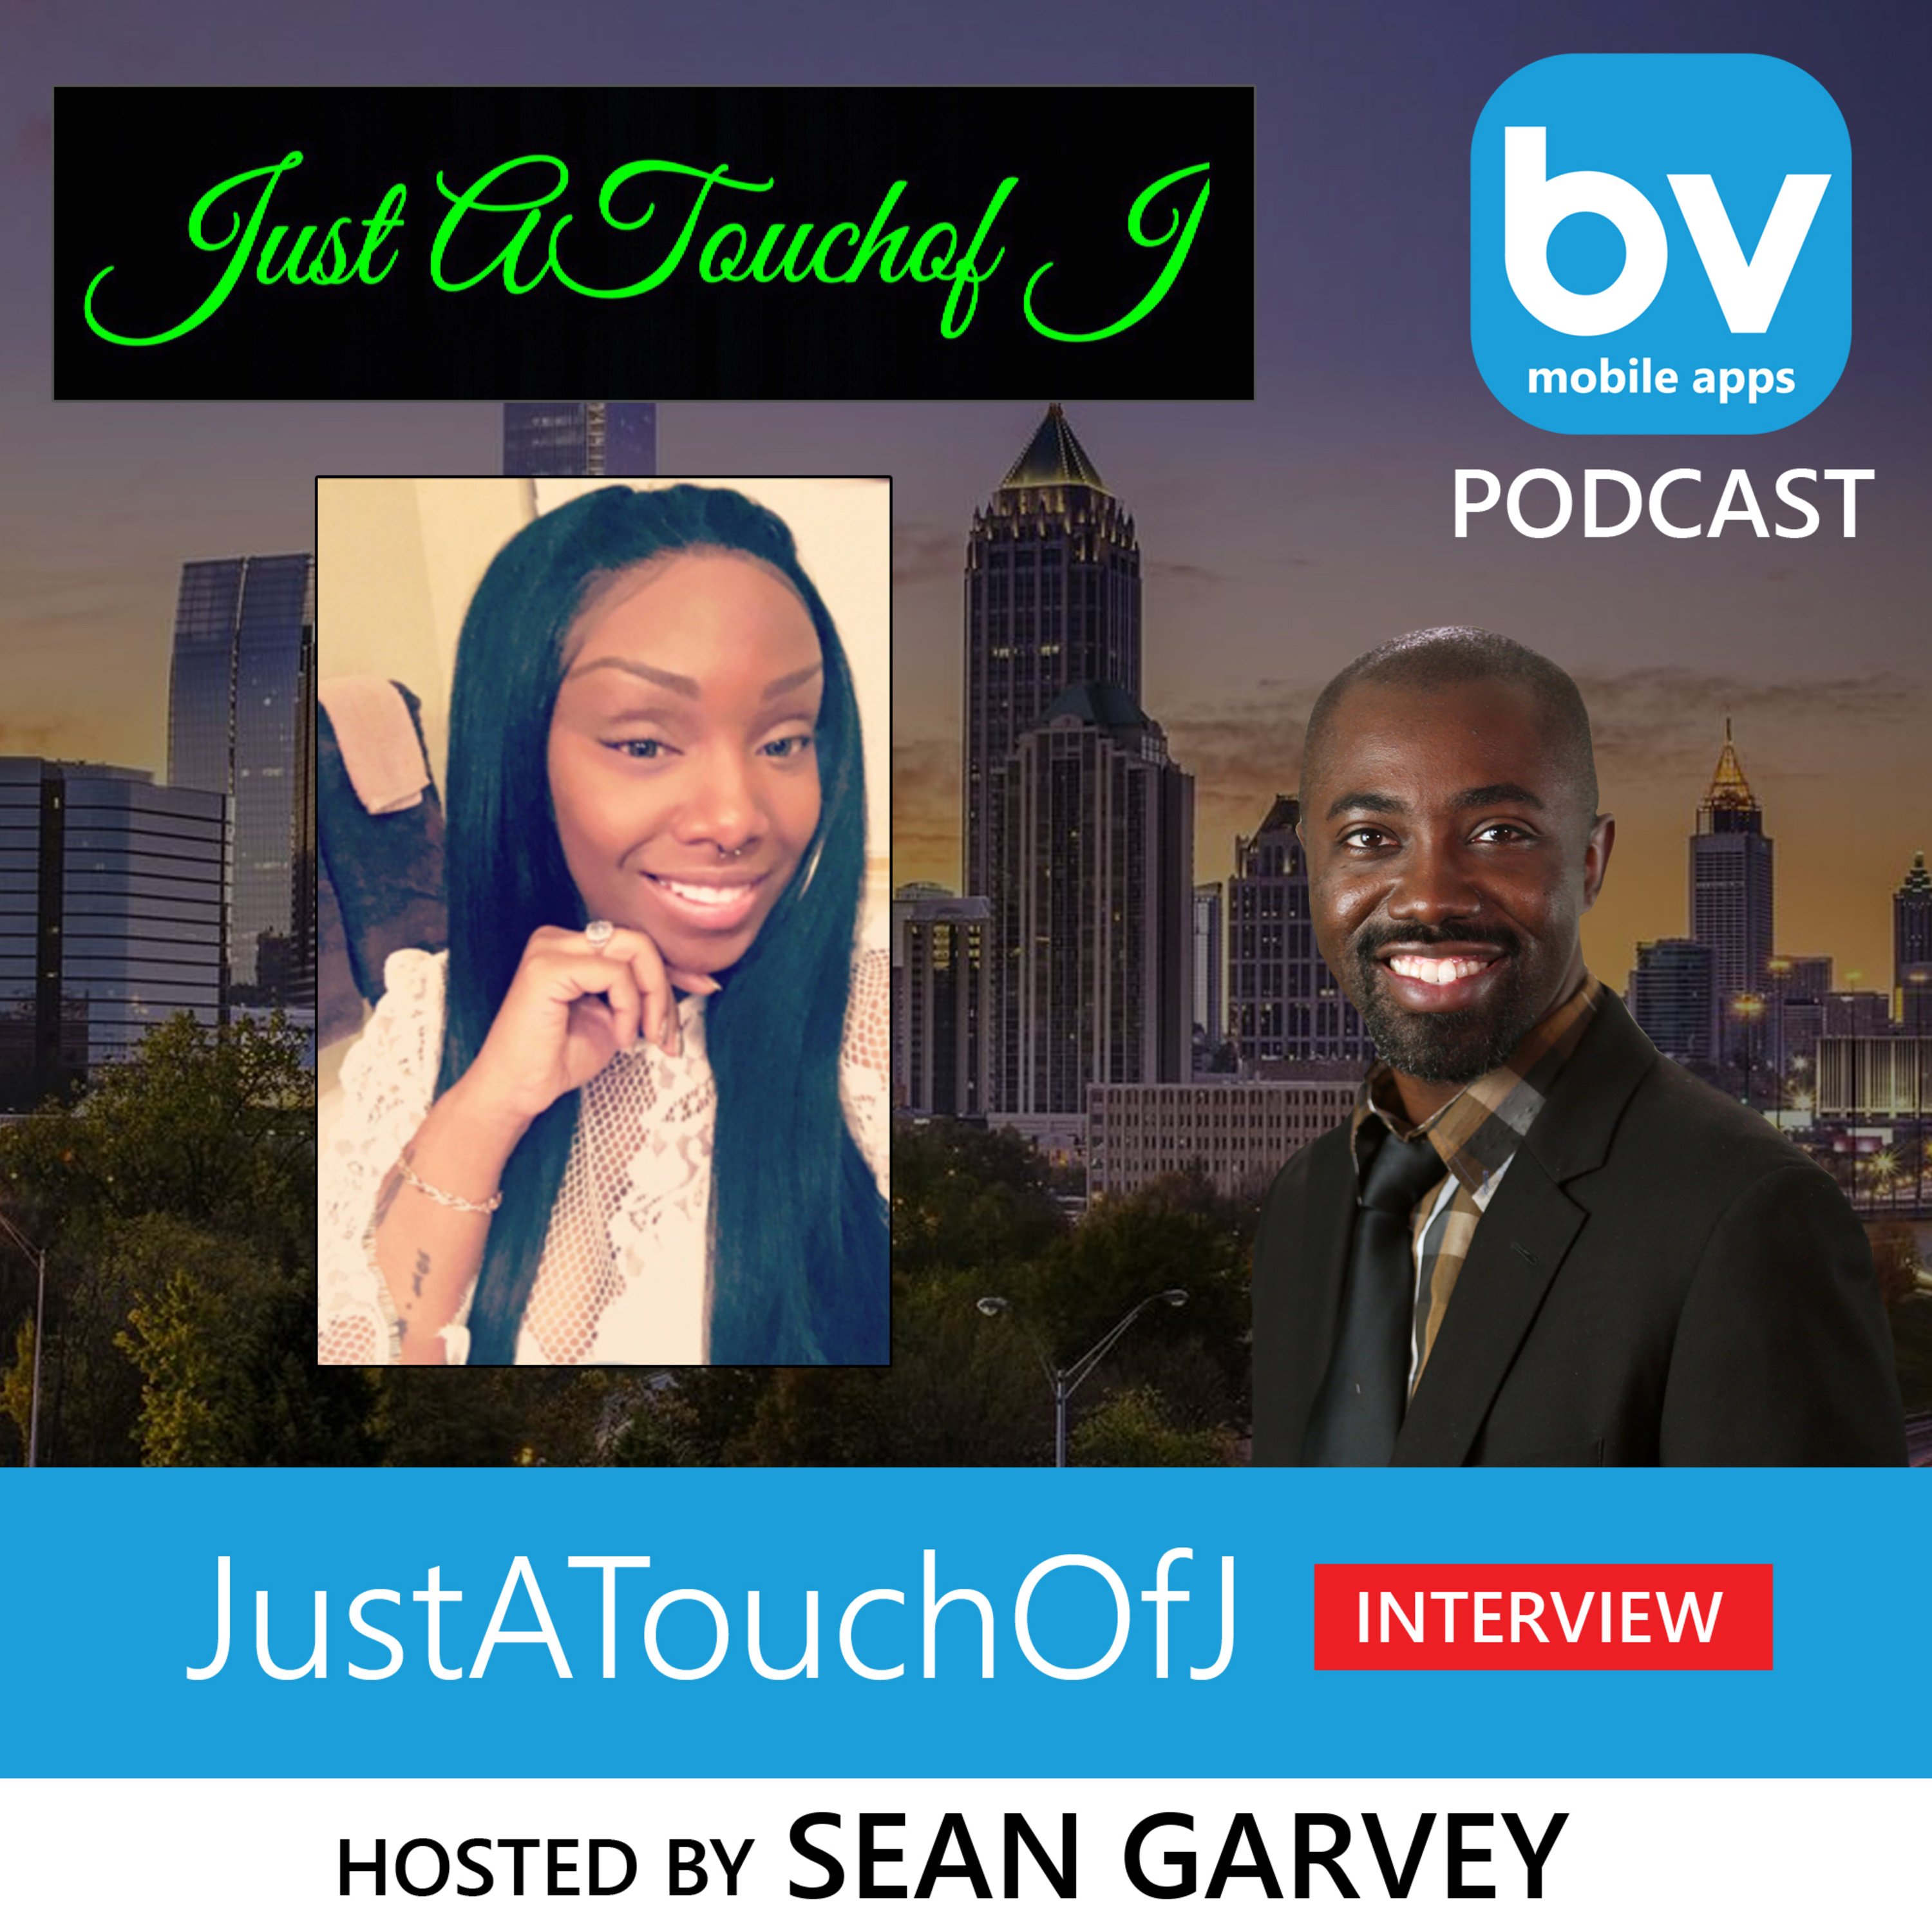 Listen to the JustATouchofJ (Interview) Hosted by Sean Garvey 👉🏾 Blackvibes.com & BVMobile 🙏🏾💚